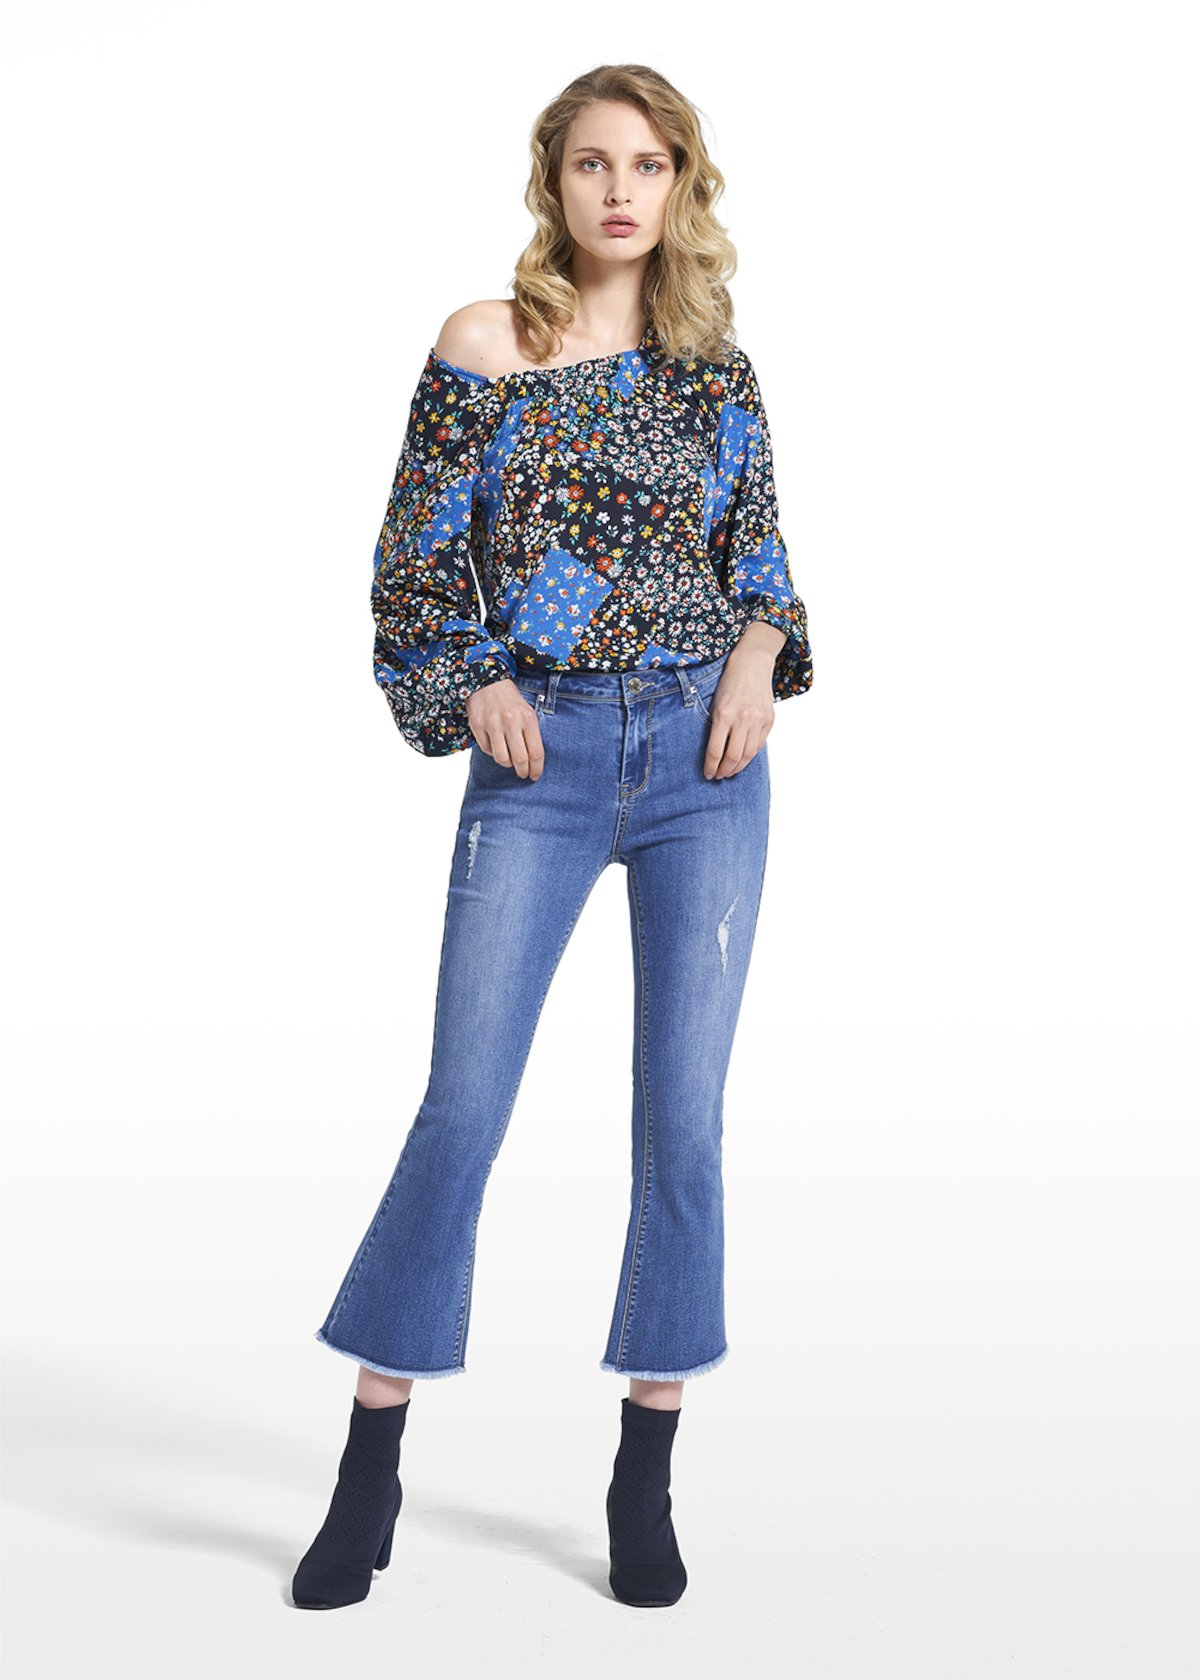 5-pocket flared pants Pandy - Blue - Woman - Category image